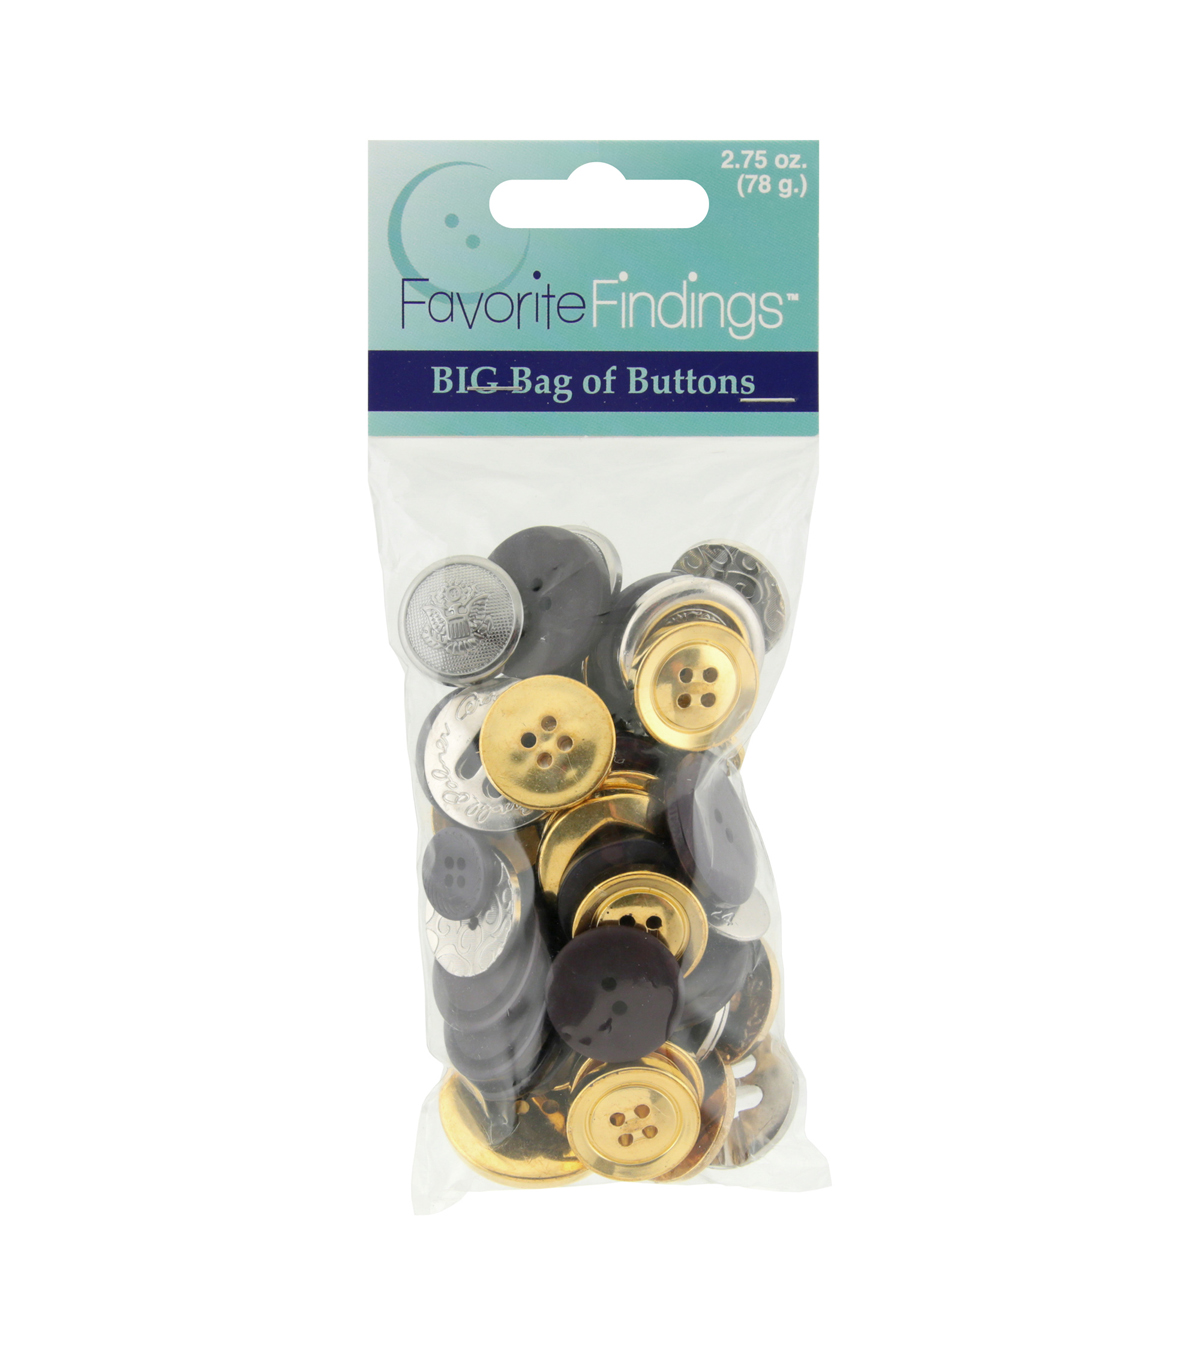 Favorite Findings 2.75 oz. Value Pack Buttons-Navy & Gold